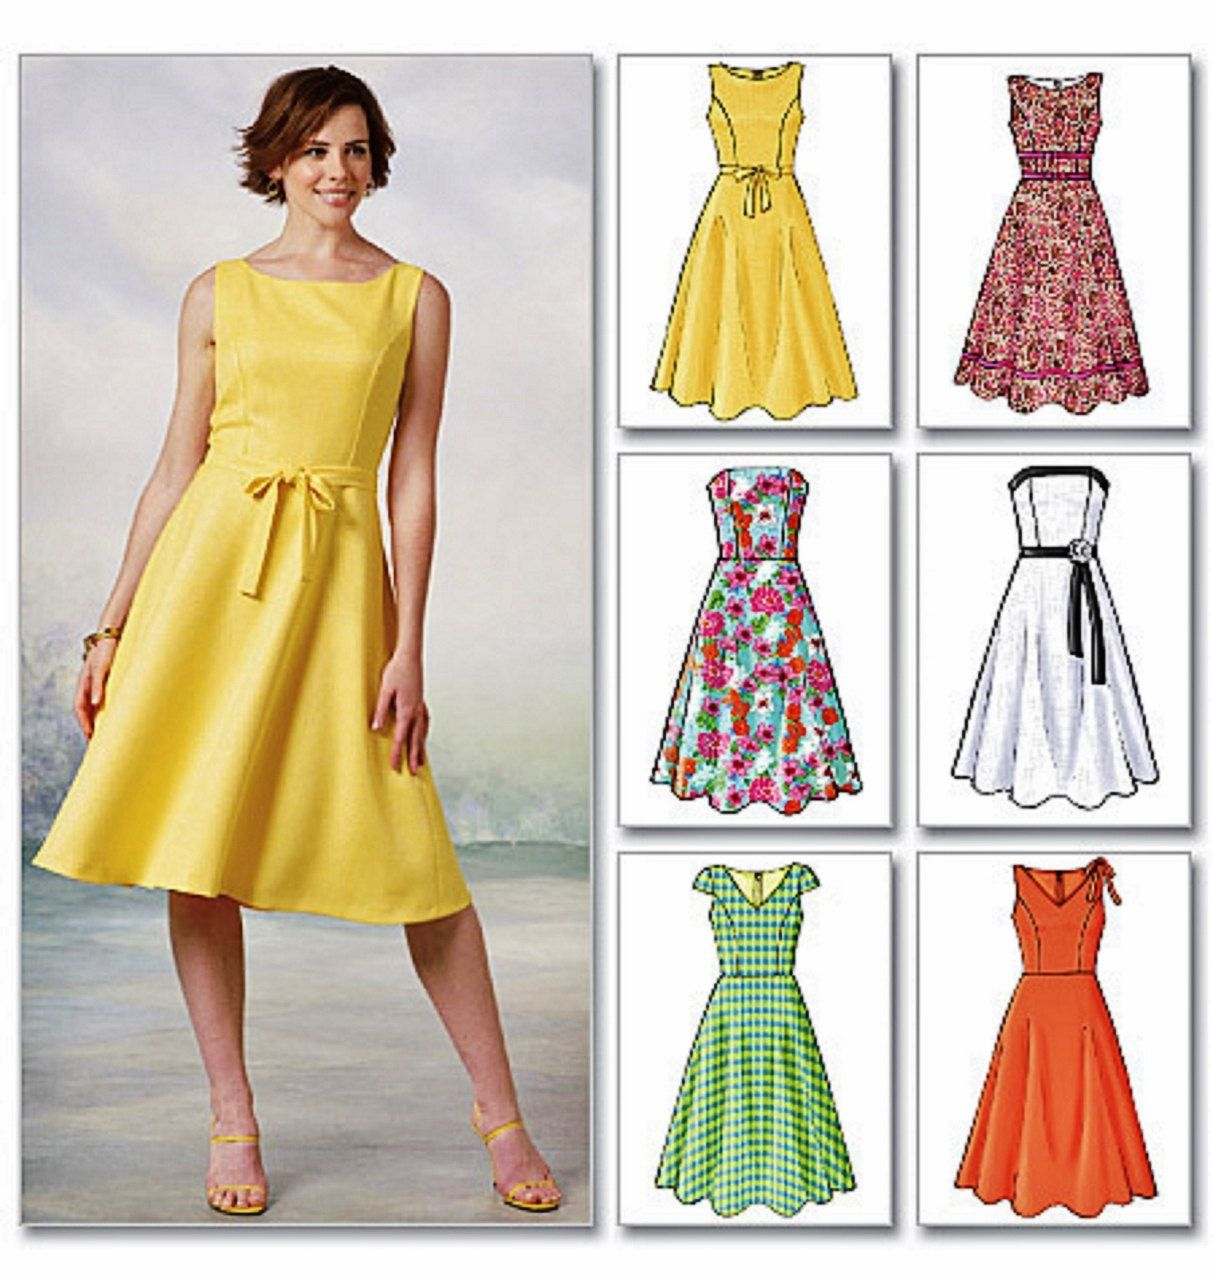 b6bfc23d8 Strapless Sundress Pattern